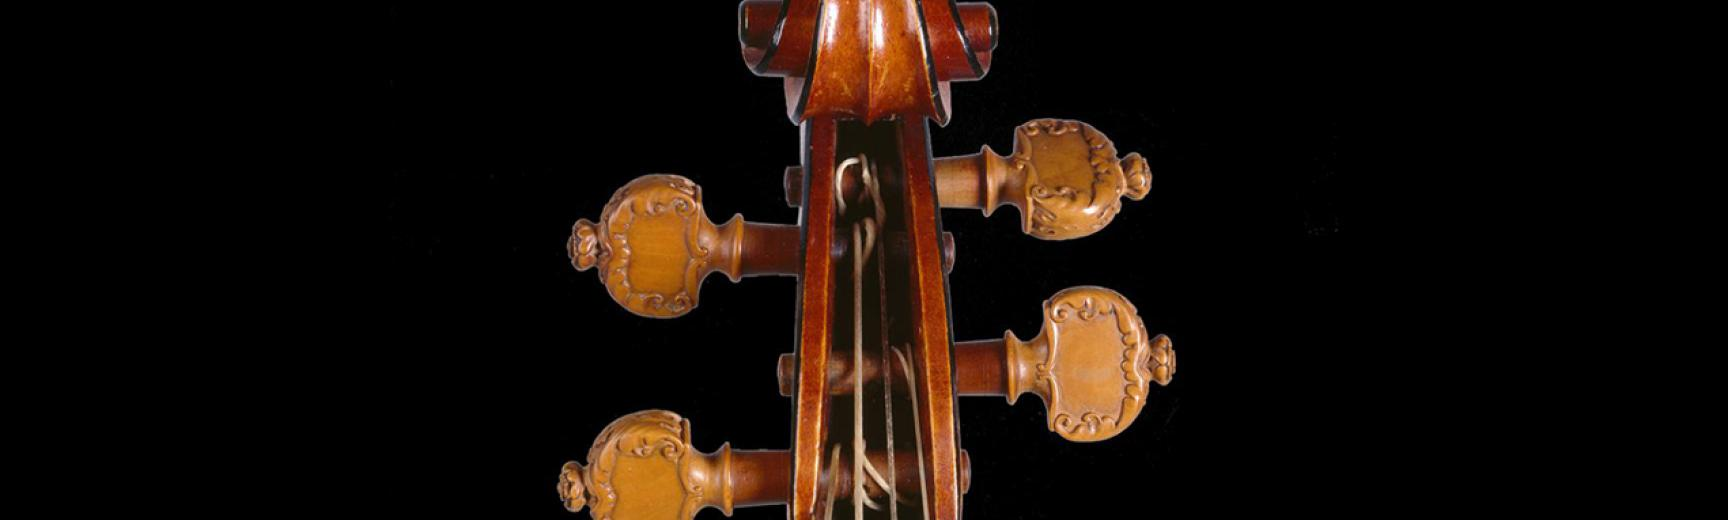 The 'Messiah' Violin by Antonio Stradivari (detail)